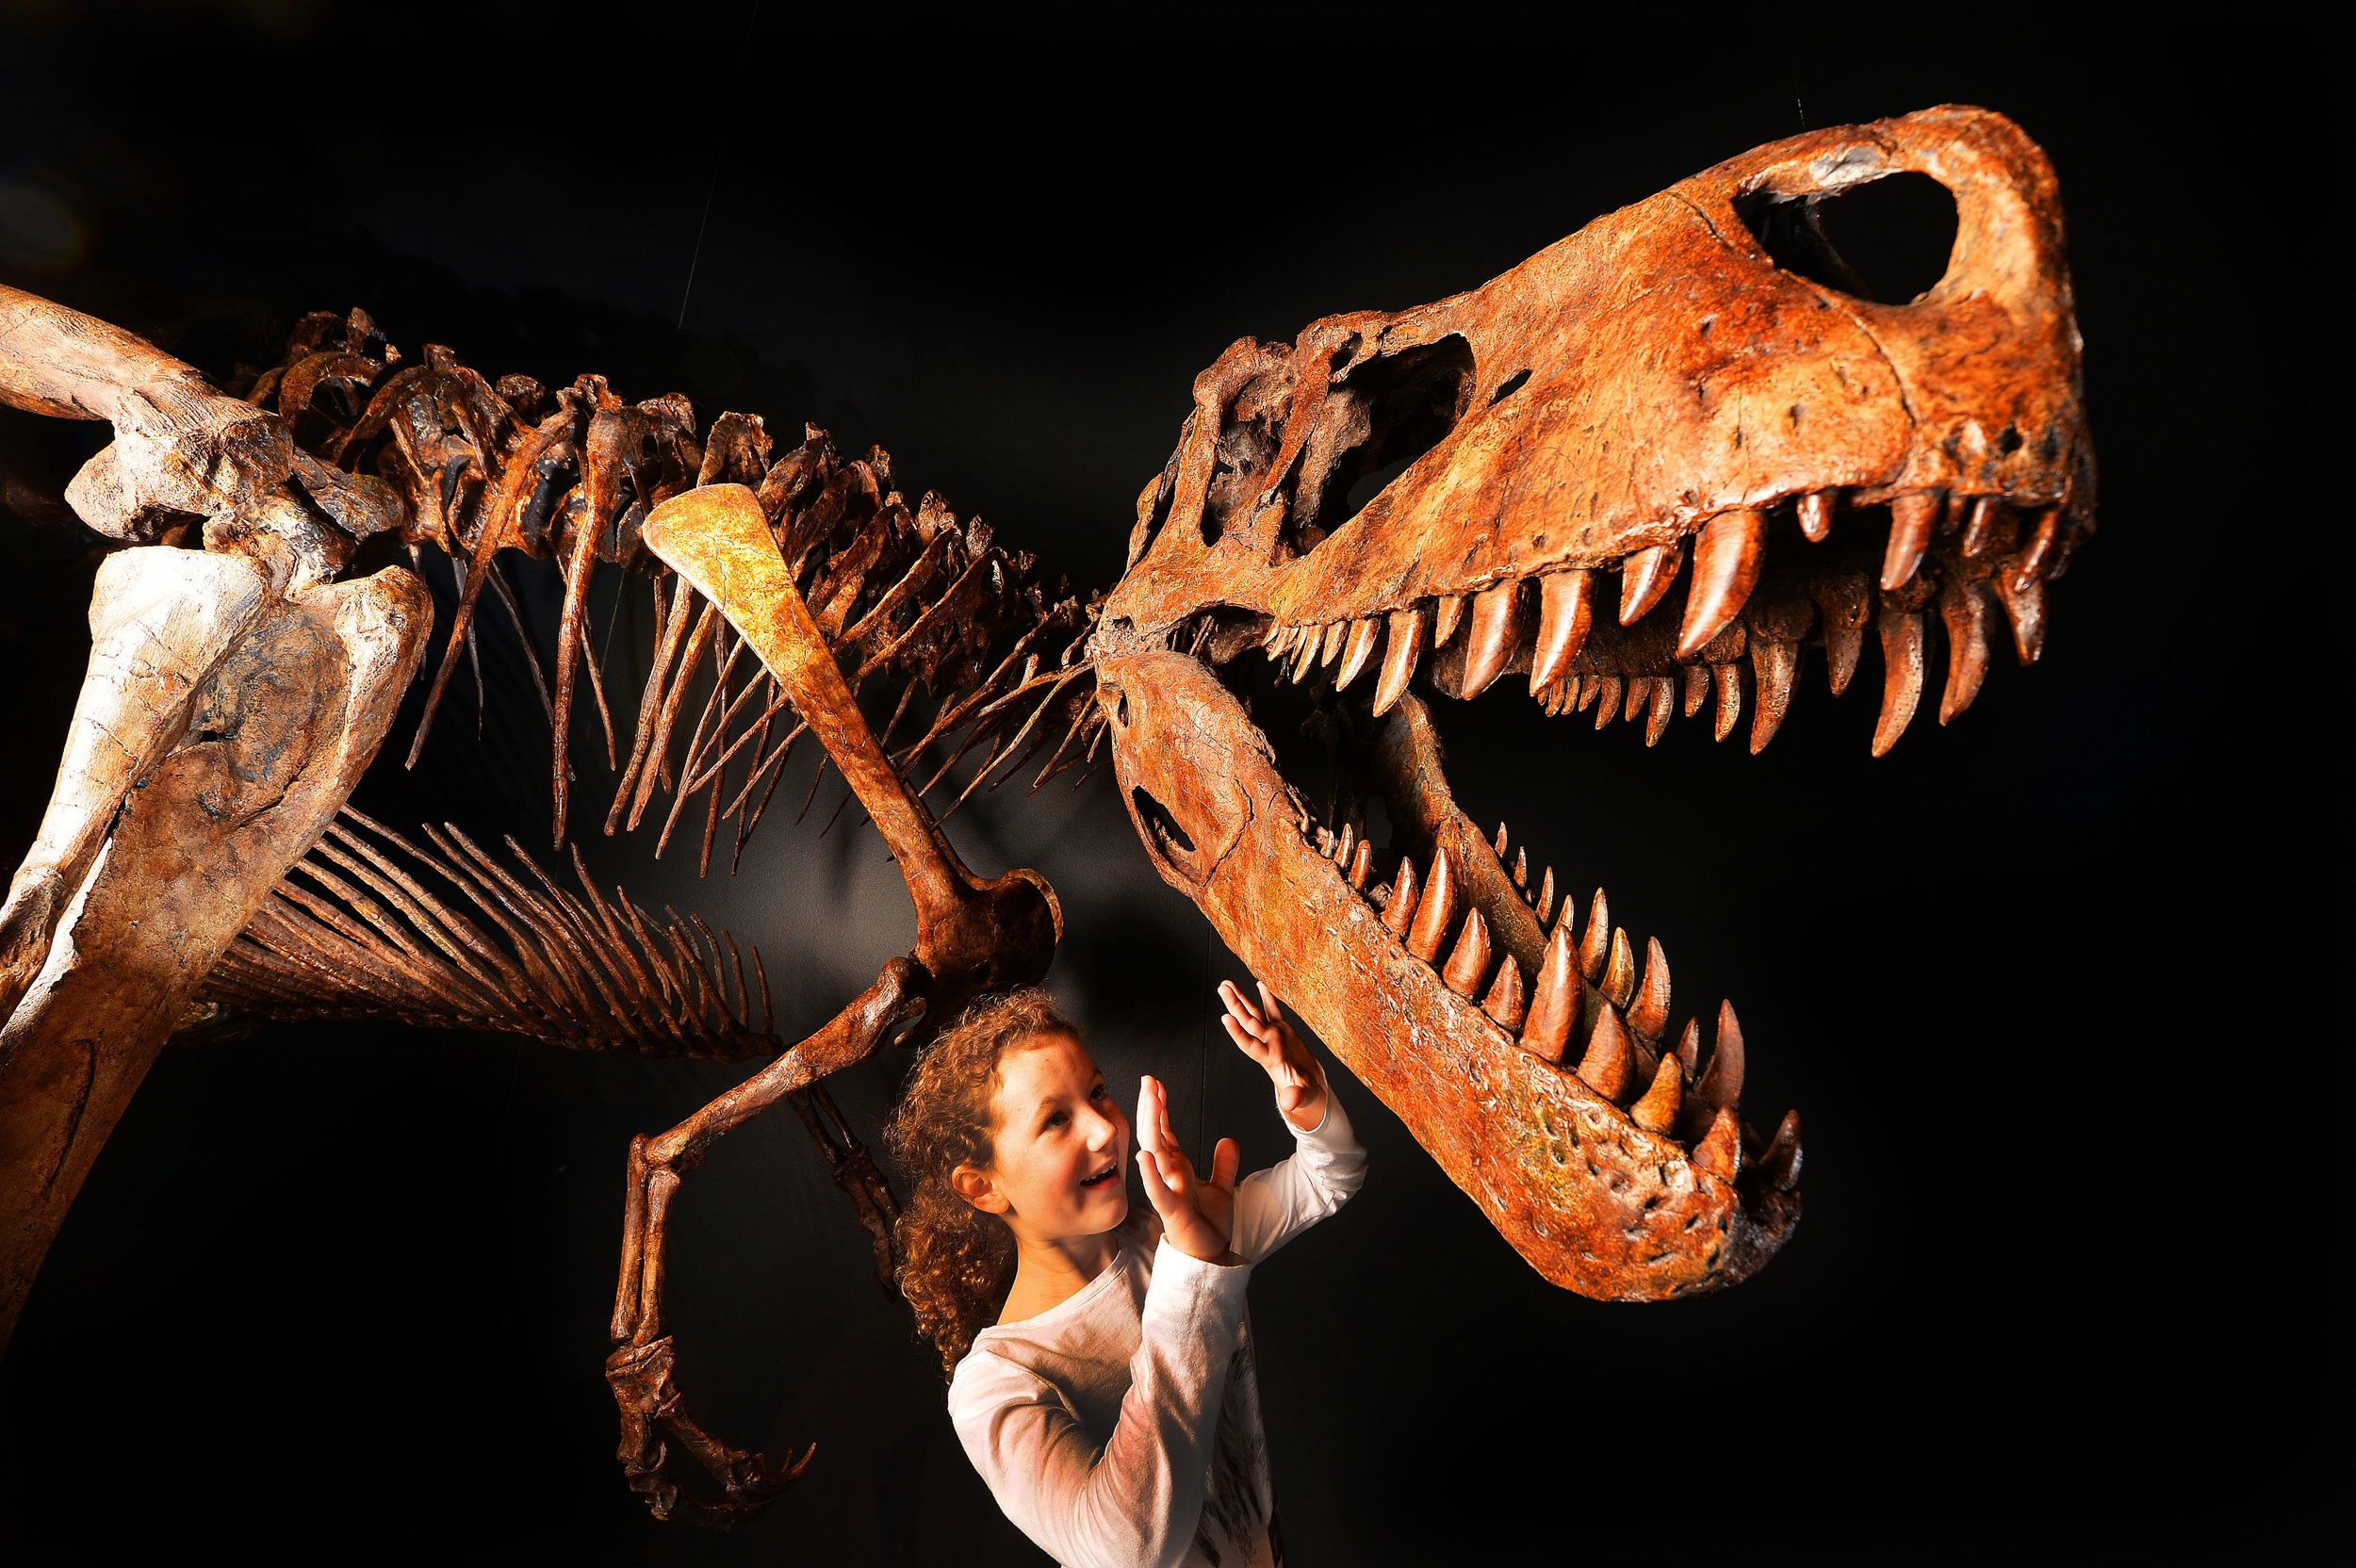 CHP_Export_116506407_Emily Chillcott 7 gets a sneak preview of a Albertosaurus sarcophagus at th.jpg